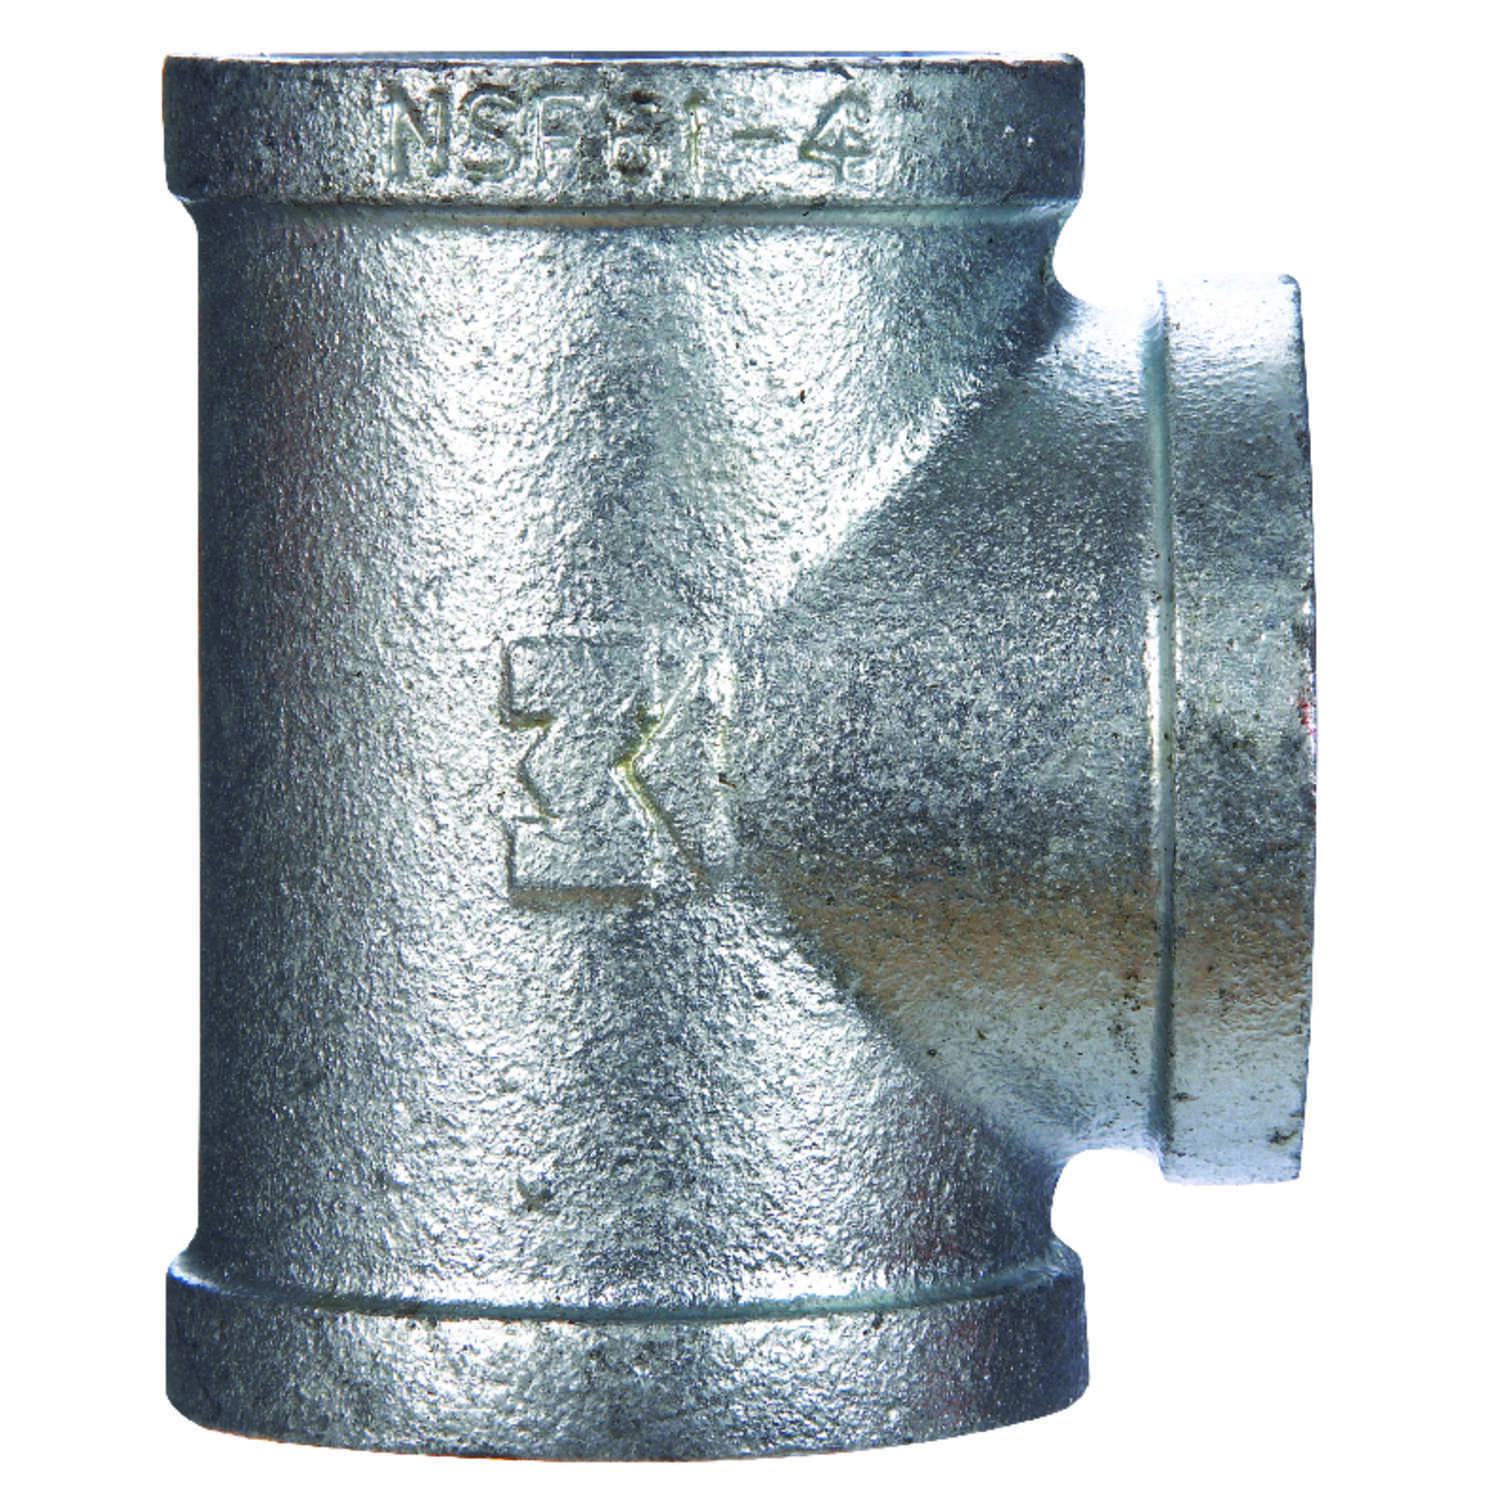 B & K  3/8 in. FPT   x 3/8 in. Dia. FPT  Galvanized  Malleable Iron  Tee